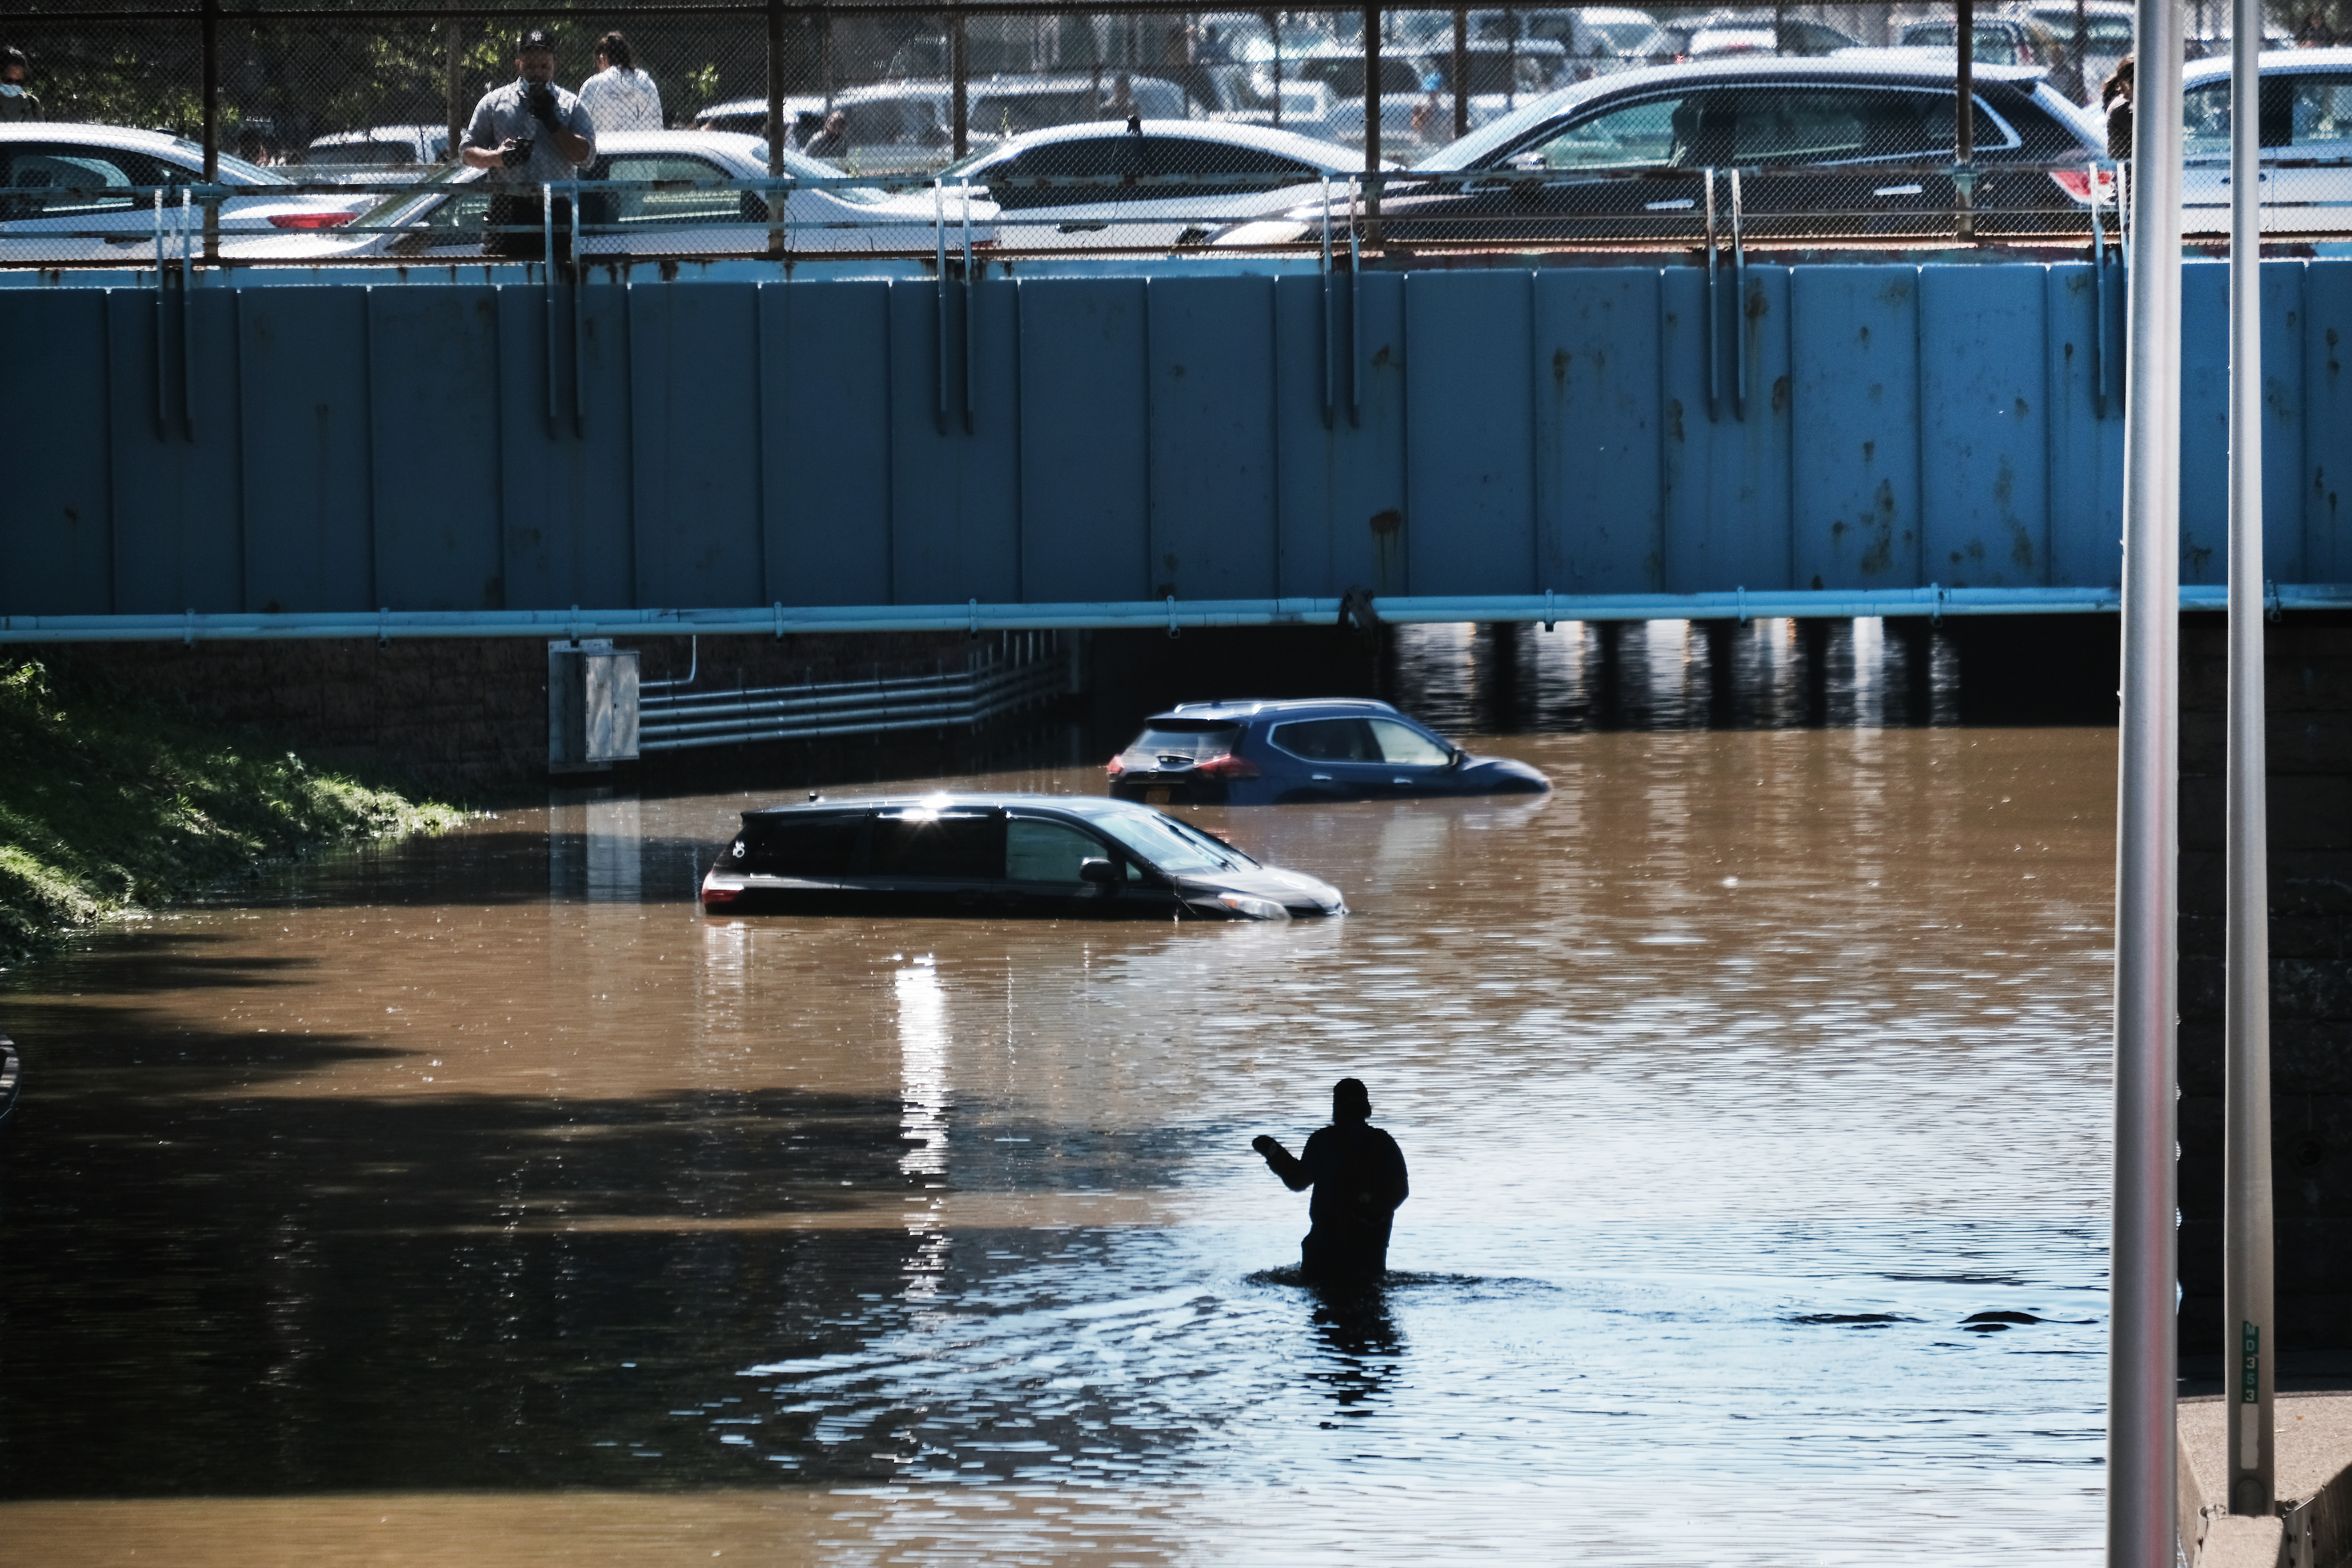 A person wades through a flooded freeway as cars sit abandoned halfway under water.